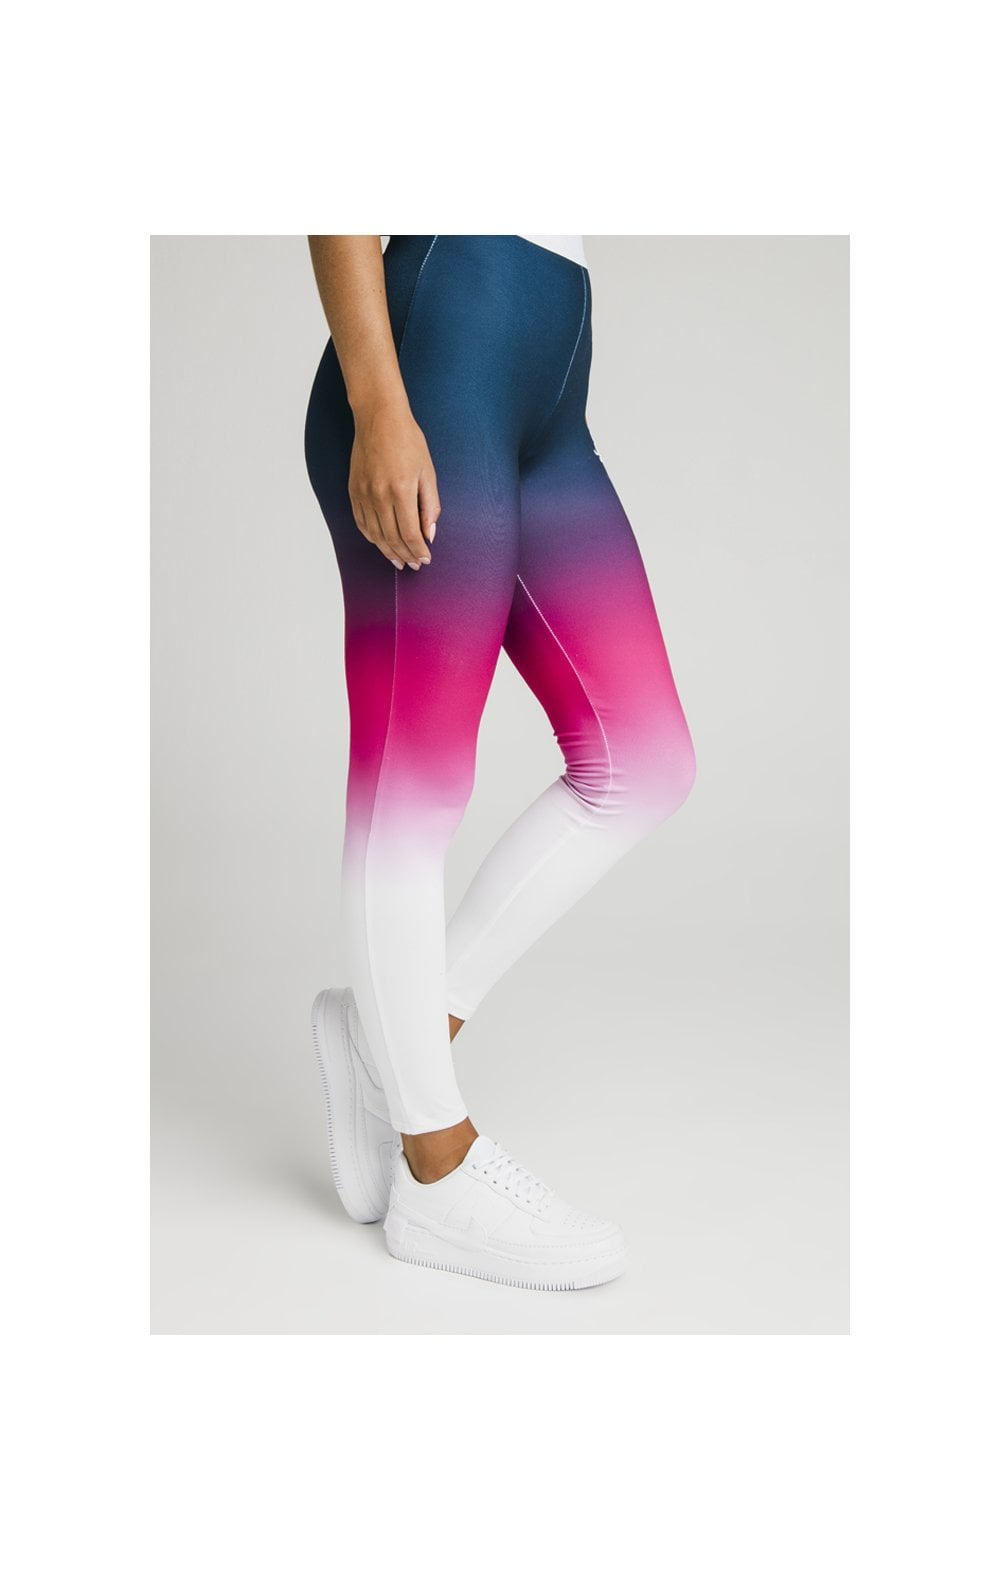 Load image into Gallery viewer, SikSilk Fade Tape Leggings - Navy, Pink & White (1)